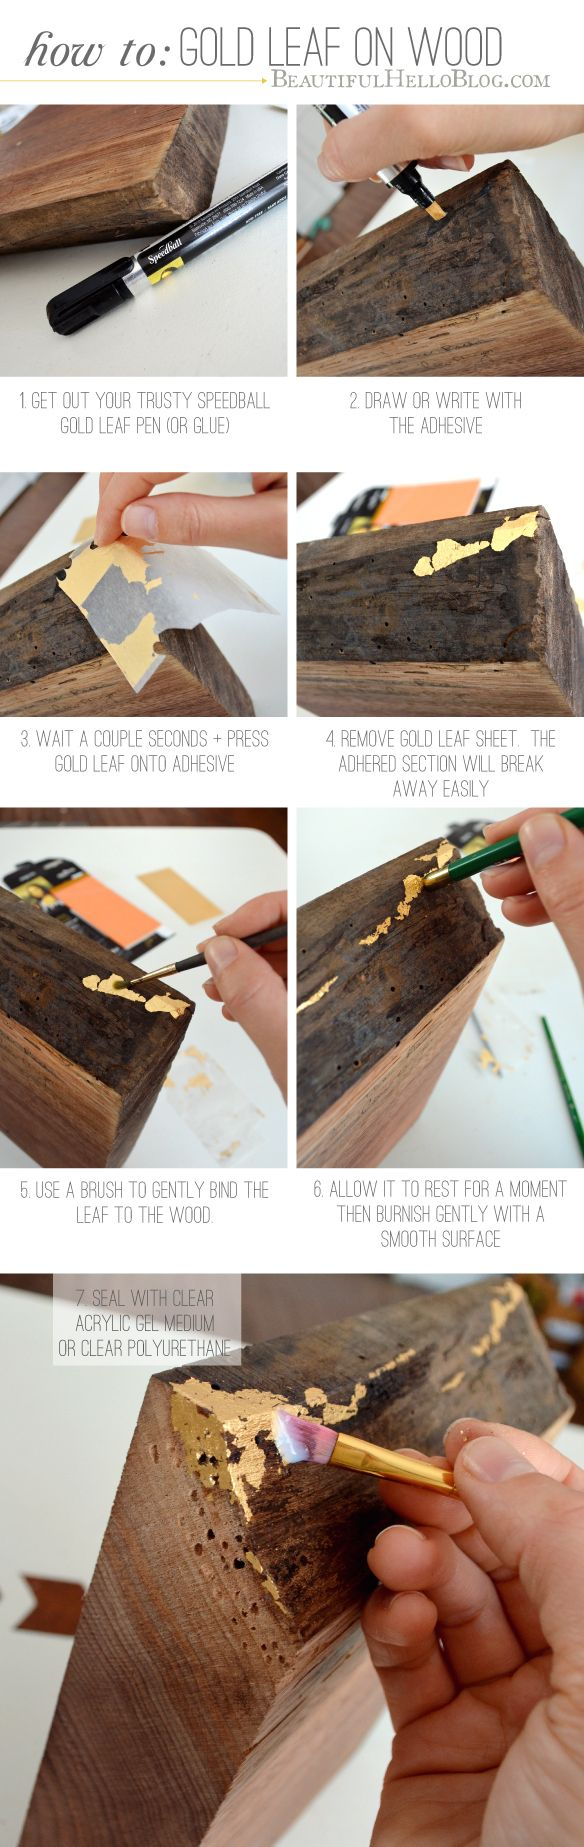 How to add gold leaf detailing to wood. Probably could use the same method on most surfaces. I want to use it on picture frame corners.